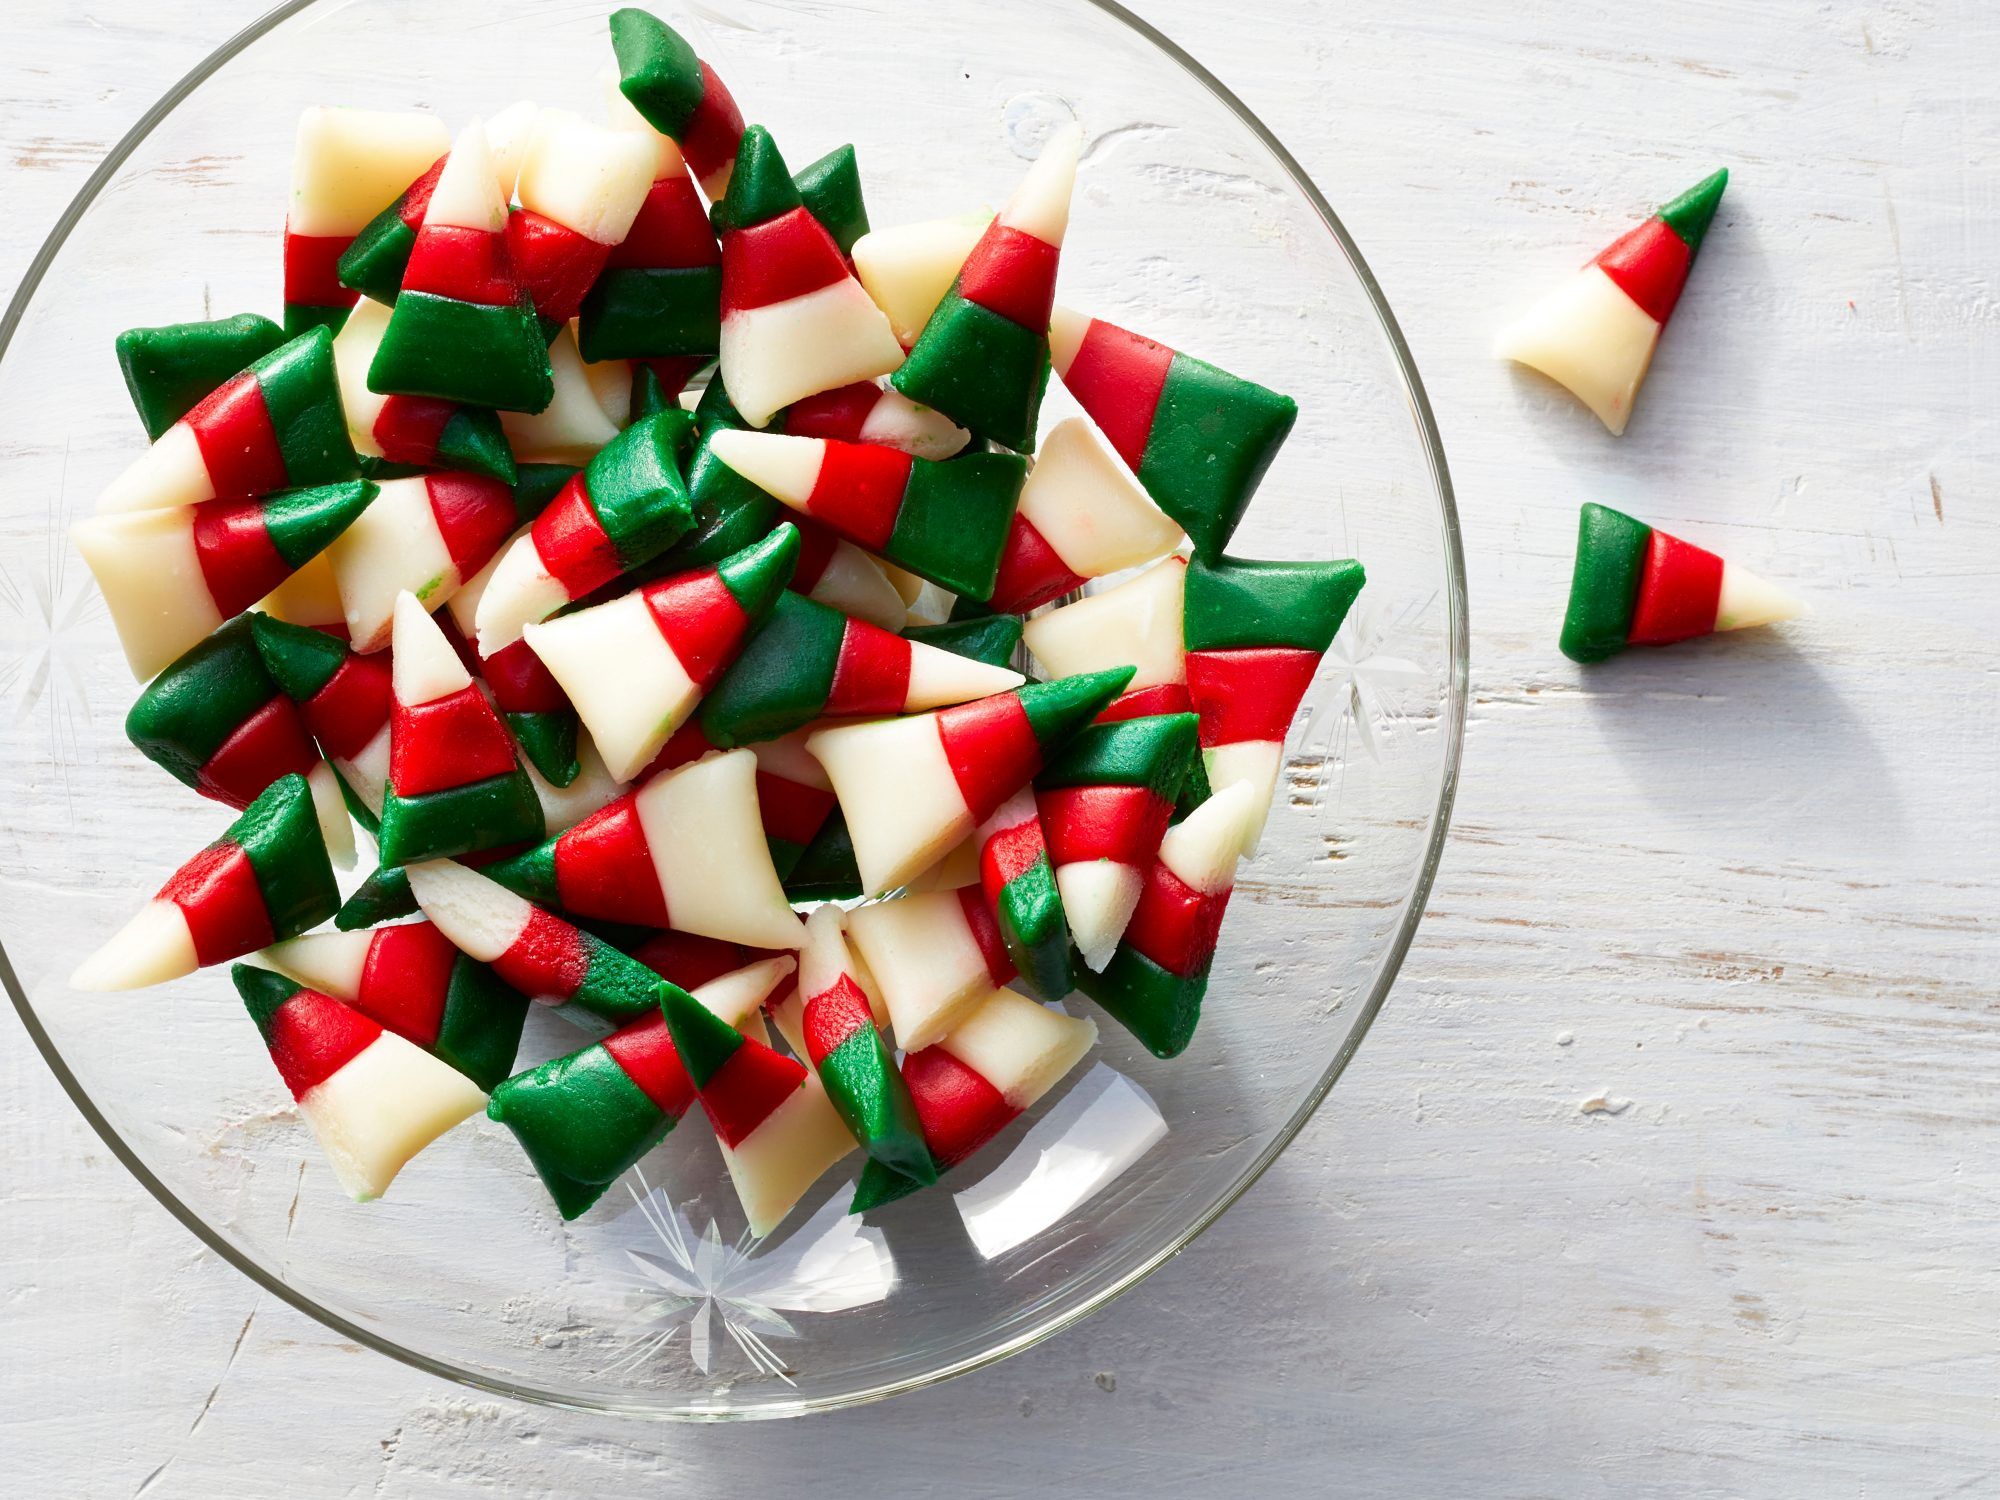 Christmas Candy Corn Southern Living